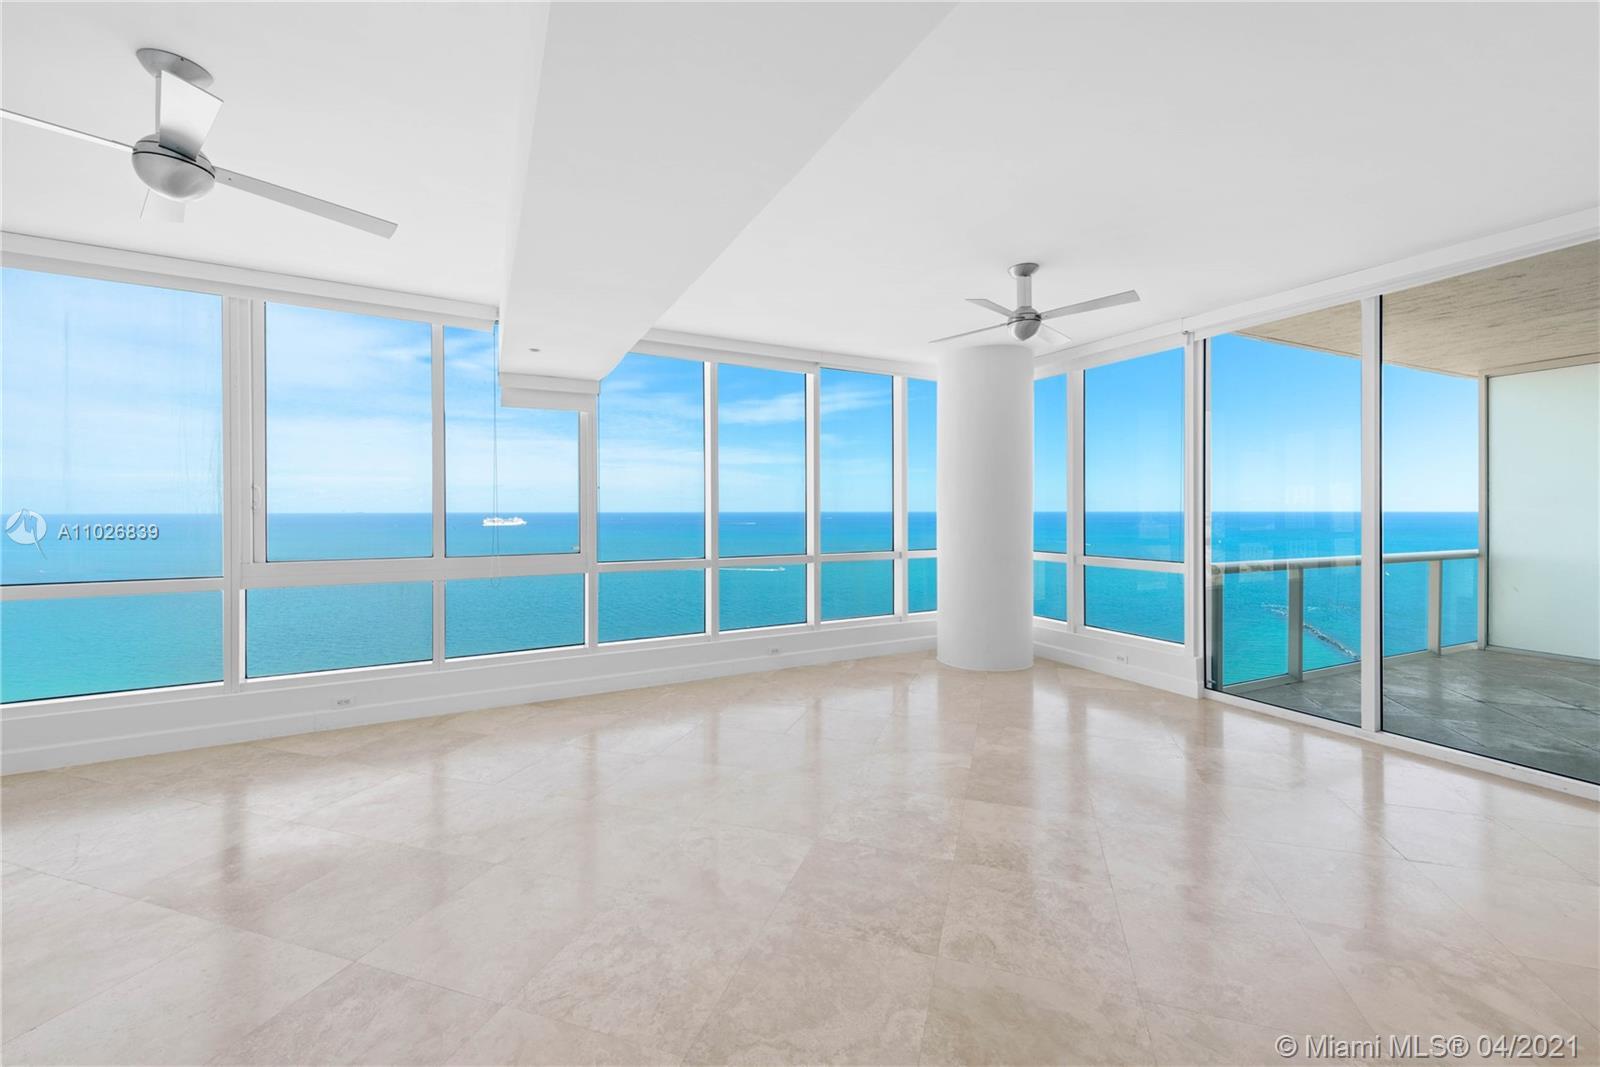 Lower Penthouse  at the Exclusive CONTINUUM South. In the most prestigious neighborhood nestled at the southernmost tip of Miami Beach. Spectacular Unobstructed Panoramic views of the Atlantic Ocean and Government Cut from every room. This unit 2 bed, 2.5 Baths, 10-foot high ceilings, gourmet kitchen Sub Zero , Miele appliances, walk-in closets, an extra large living room for entertaining, private balcony & private elevator leading to your large private foyer. The Continuum sits on 13 acres,3-story Gym lap pool & Spa 2 Lagoon Pools, direct beach access with full-services, Restaurant ,3 Tennis Courts. Concierge, Valet & 24-Hr Security. Very easy to show! Renovation will start  soon, still on time to personalized it !!!RENOVATION WILL START PRICE WILL RAISE!!